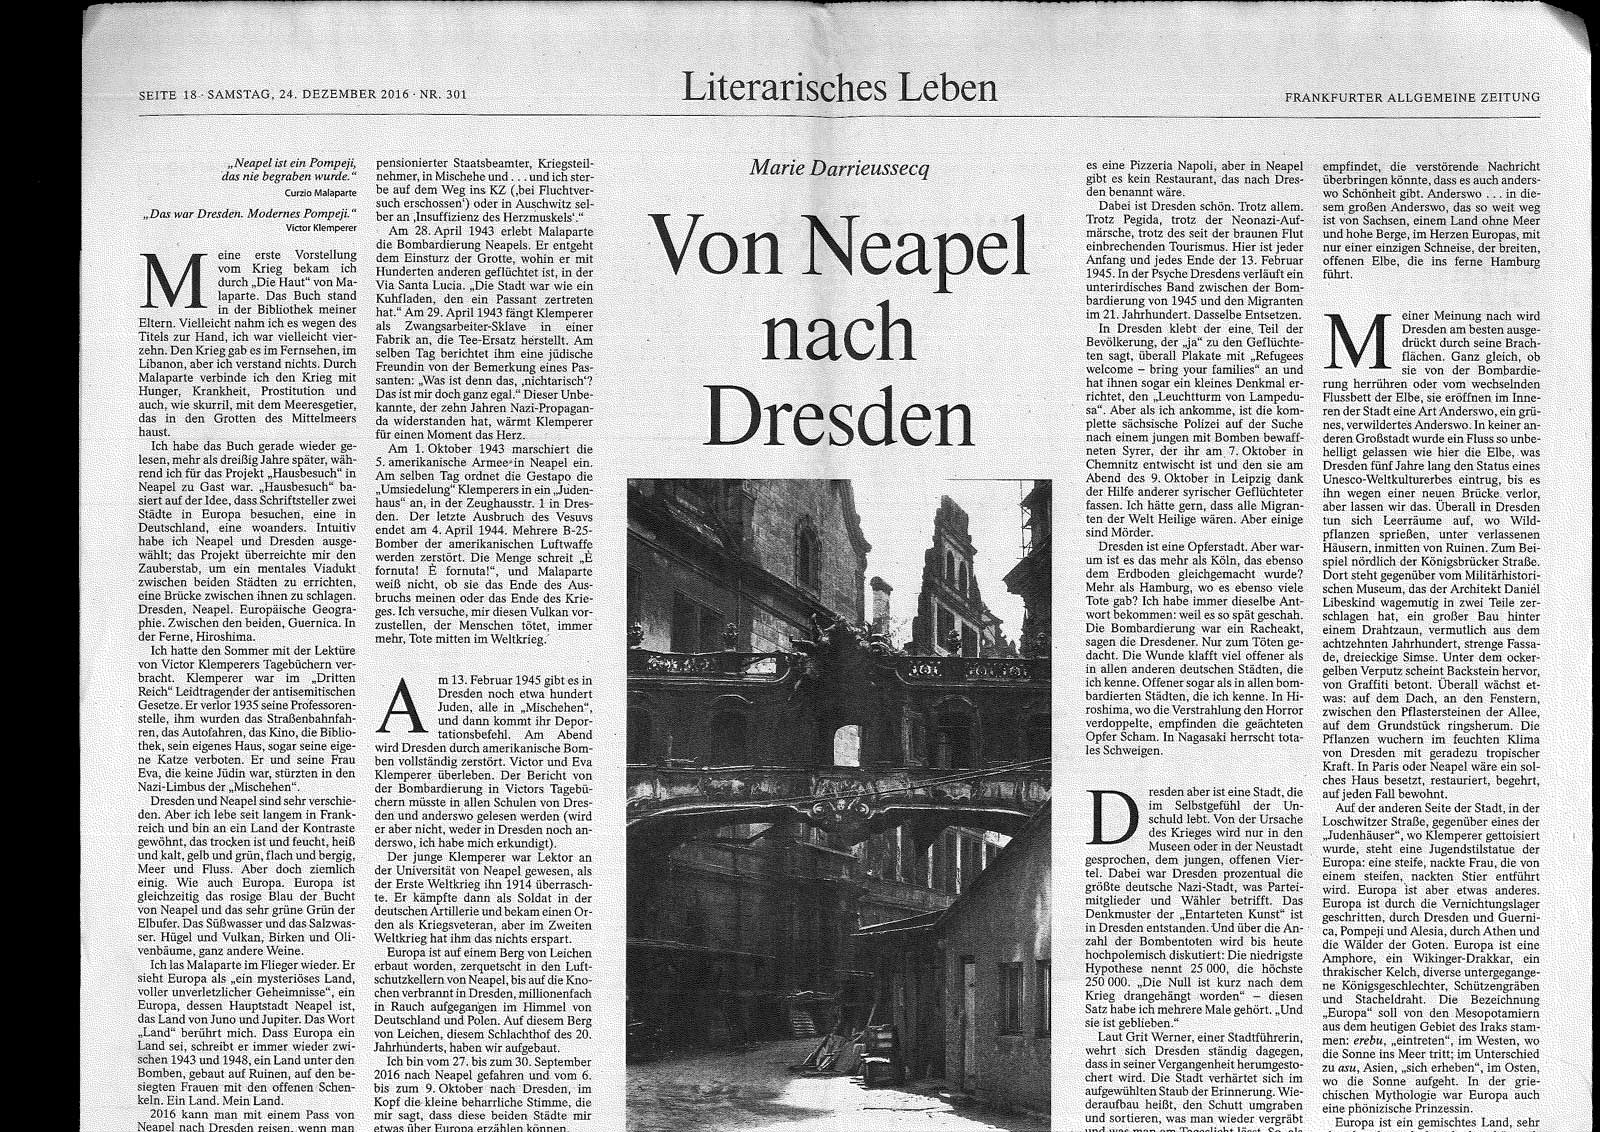 Von Neapel nach Dresden FAZ traduction du texte en allemand